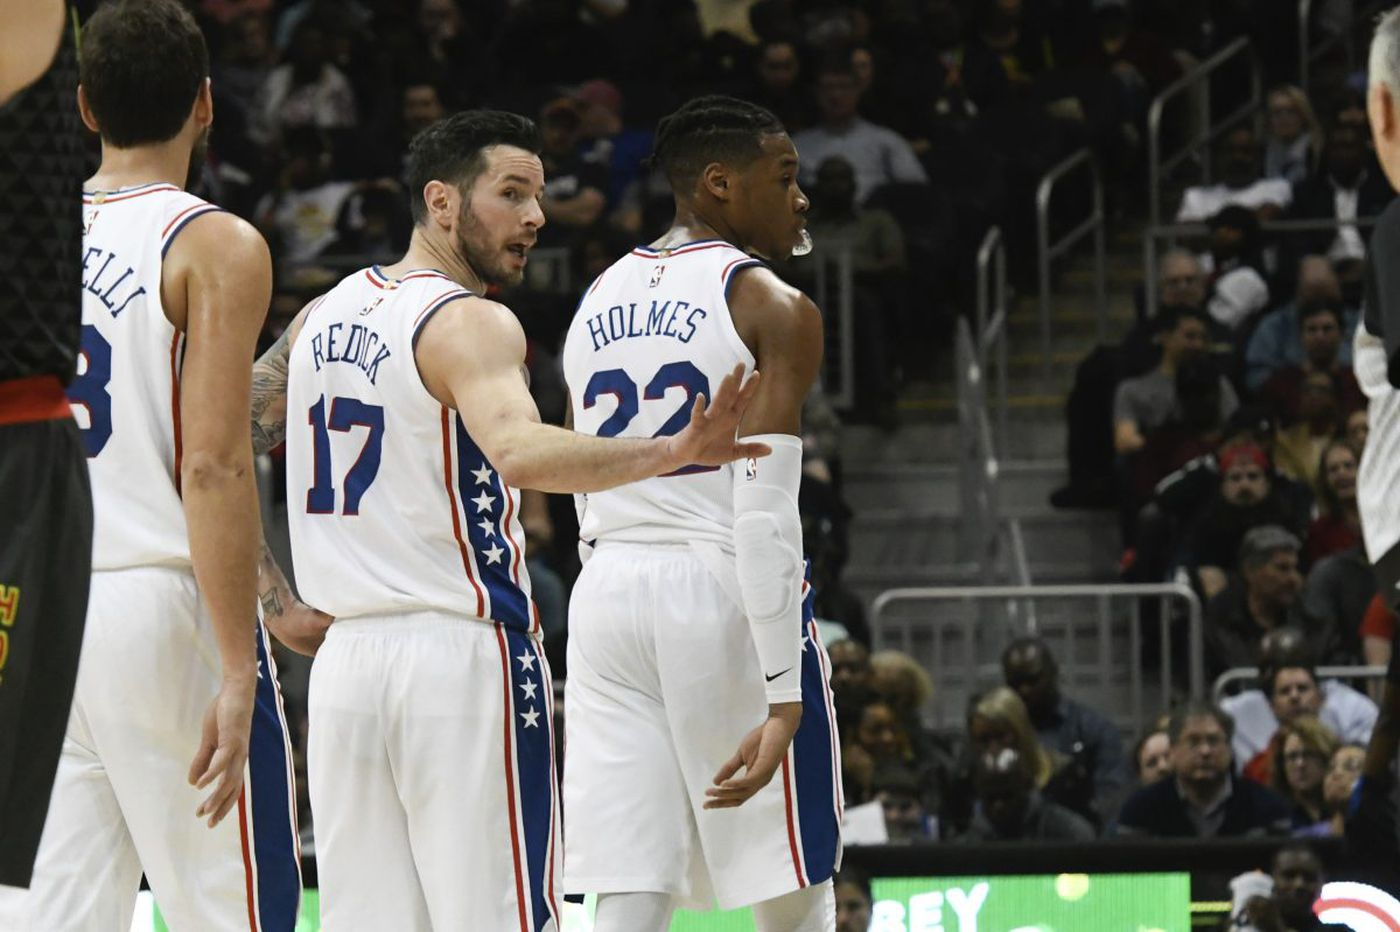 Sixers' JJ Redick thinks lack of playoff experience is an advantage